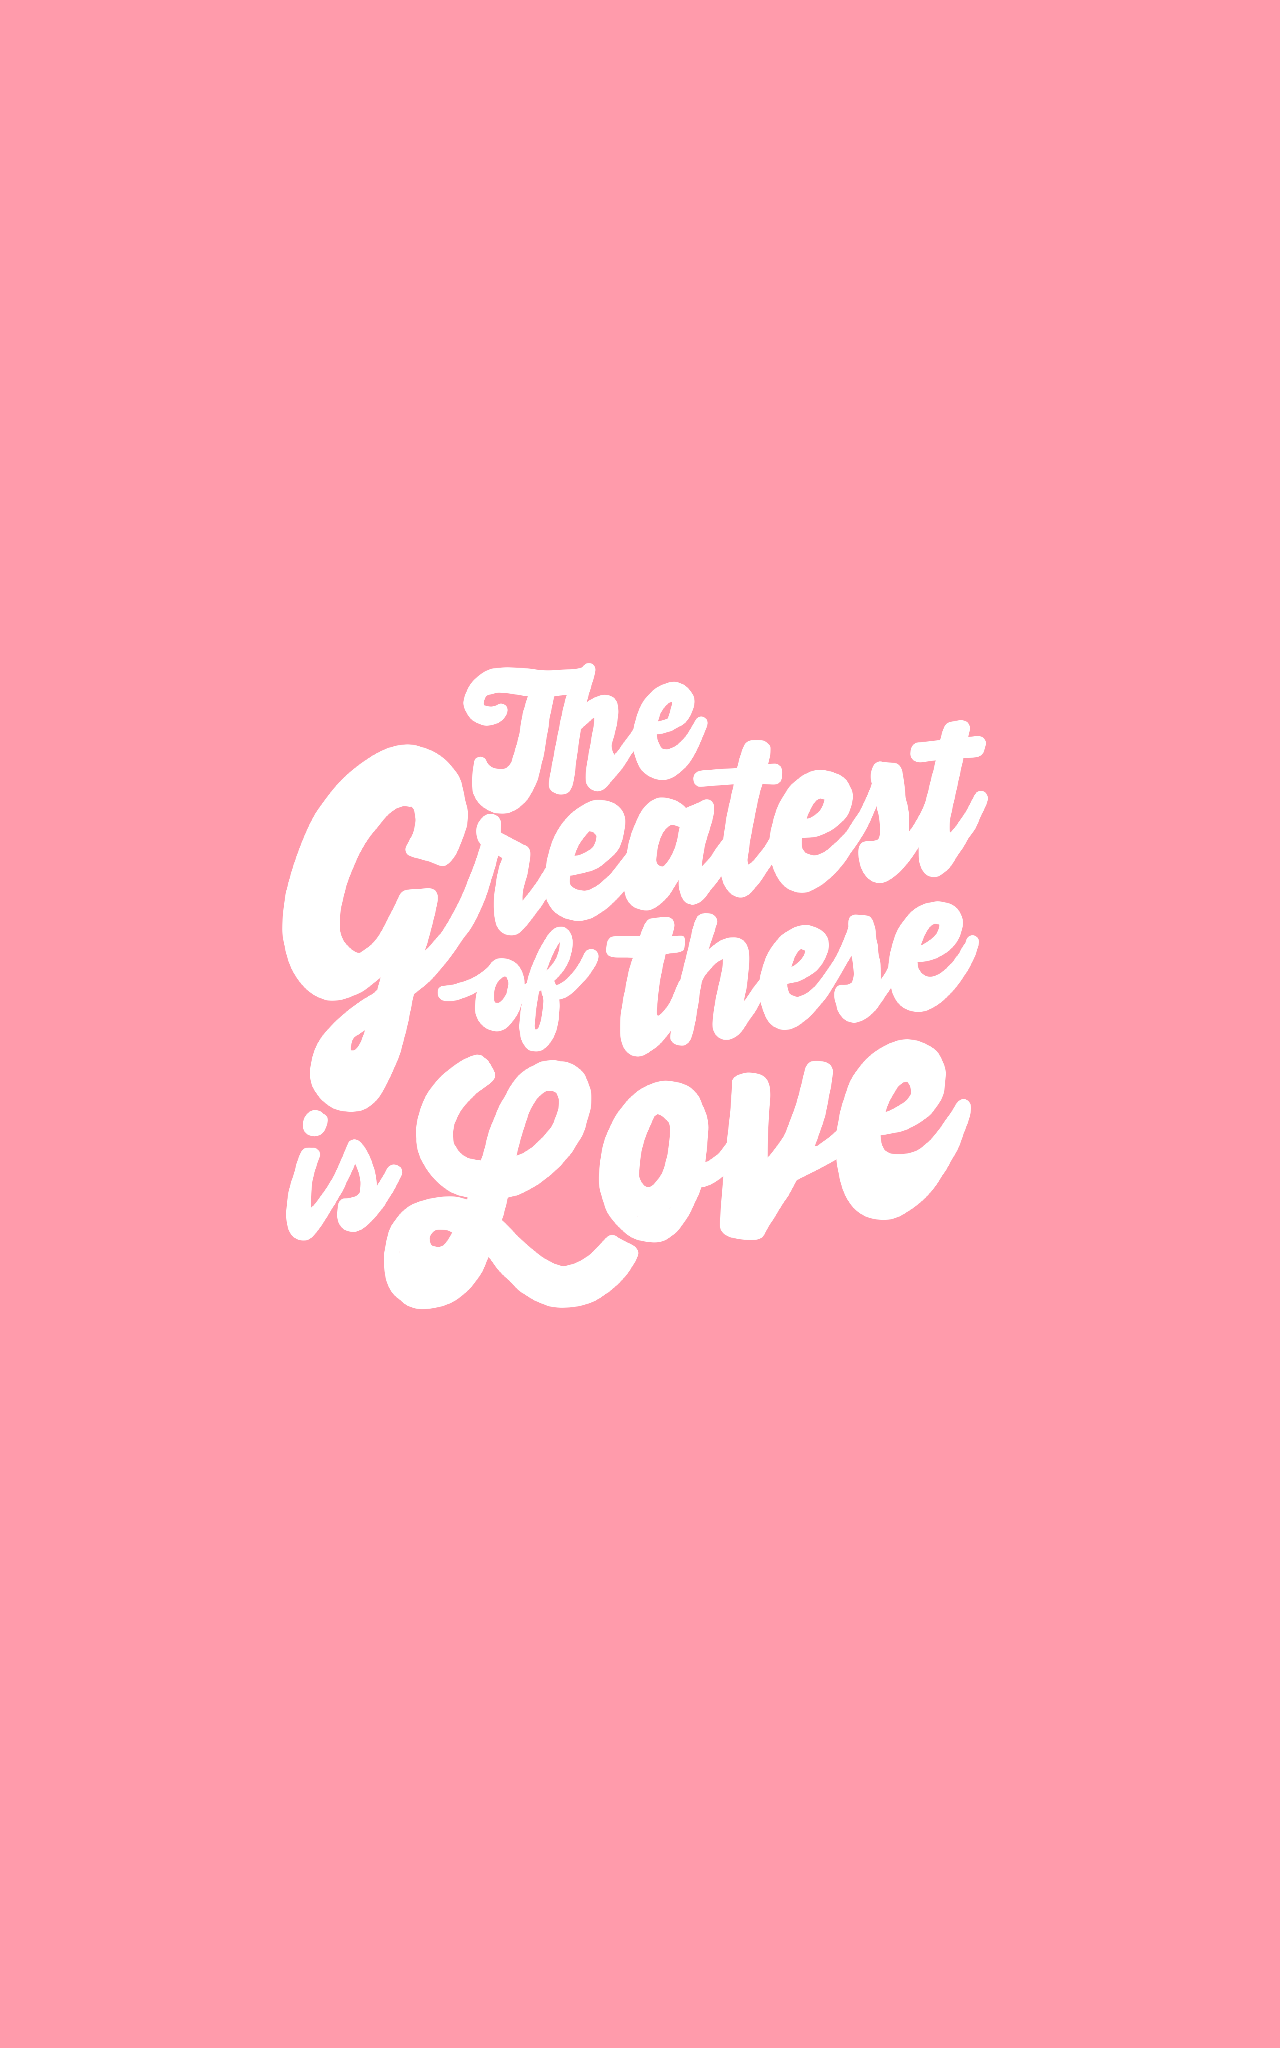 The Greatest Of These Is Love Iphone Wallpaper Christian Wallpaper Iphone Wallpaper Bible Bible Verse Background